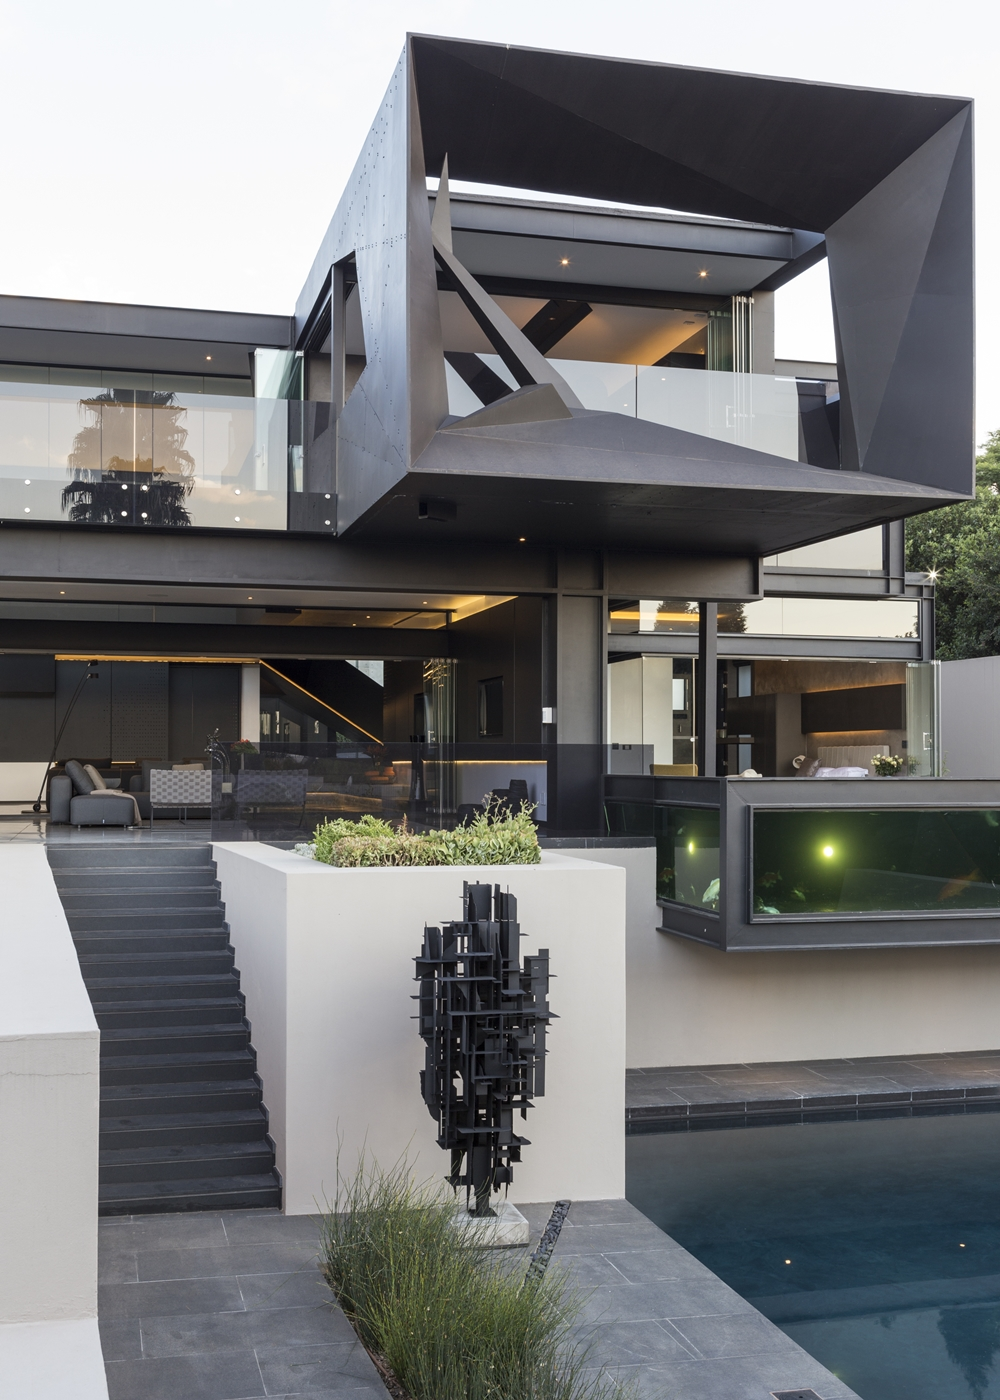 Best houses in the world amazing kloof road house architecture beast - Best design houses ...